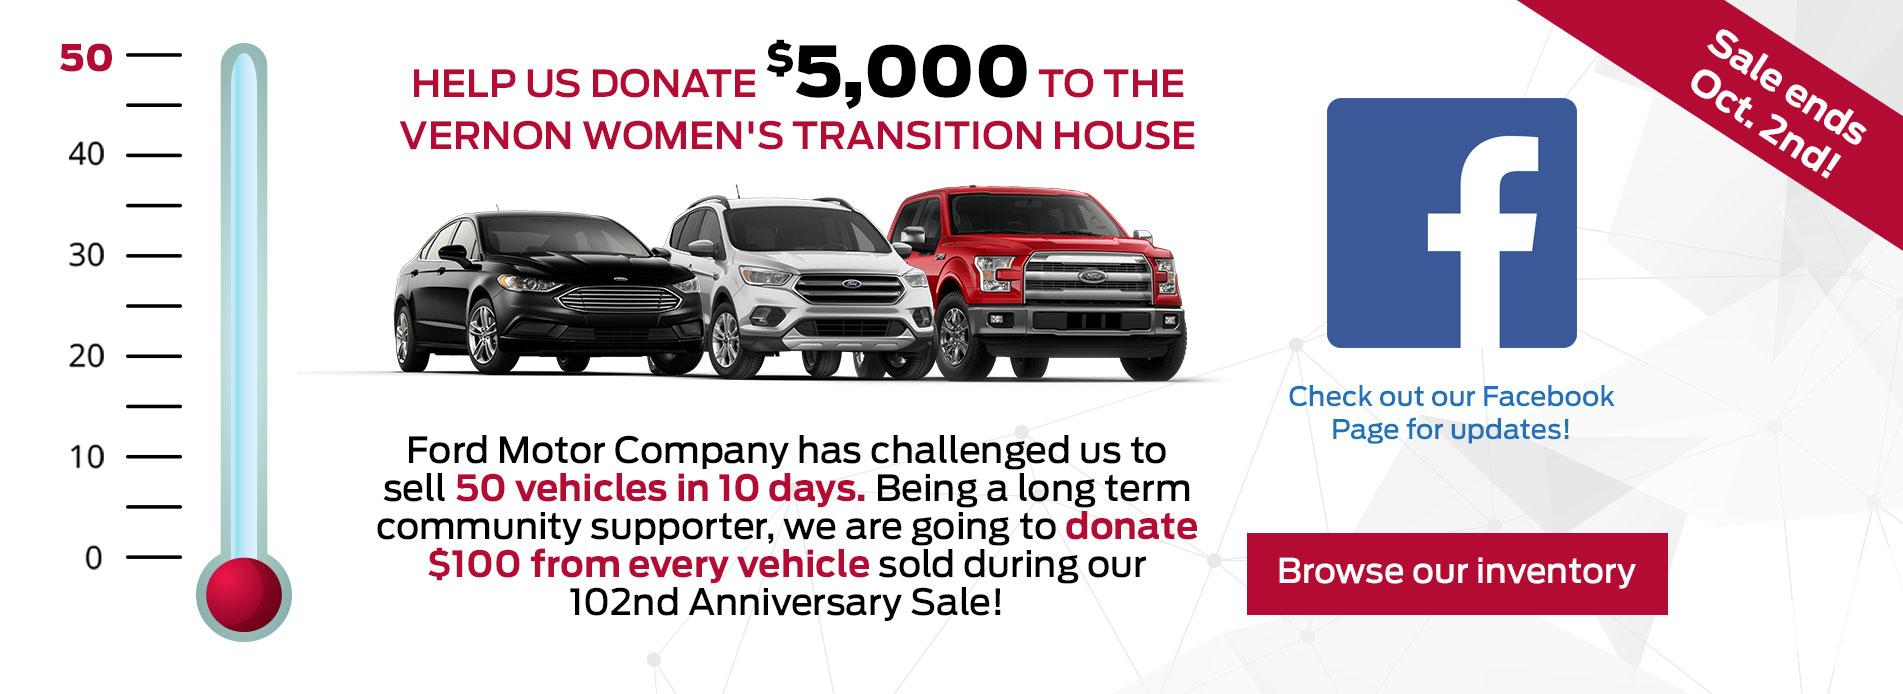 50 Cars in 10 Days = $100 donated from every vehicle sold